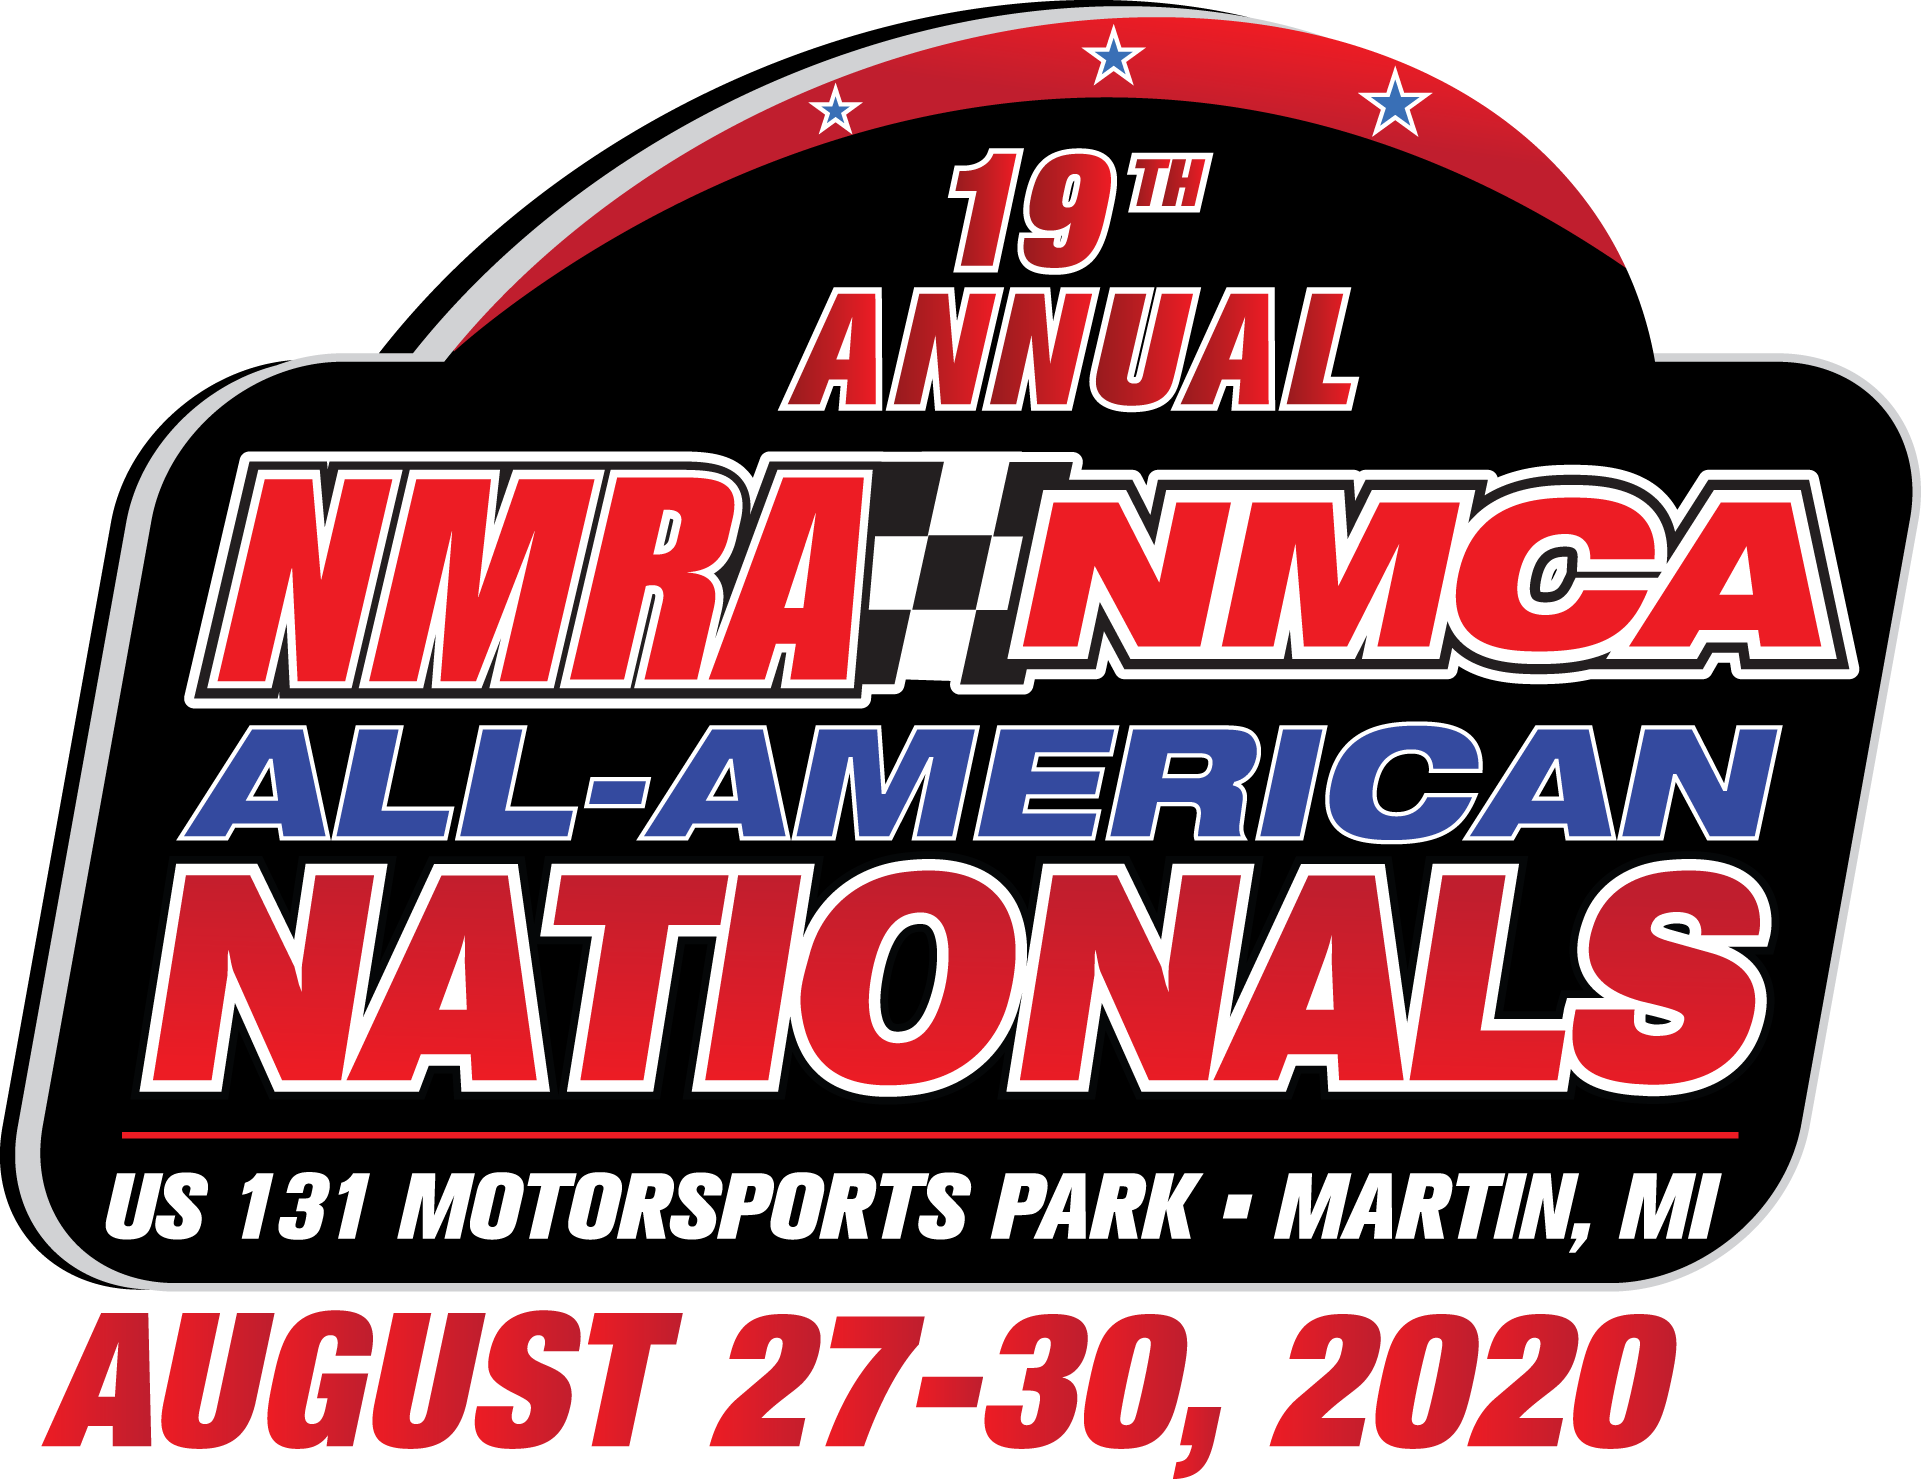 NMRA/NMCA All-American Nationals Moves to US 131 Motorsports Park August 27-30, 2020